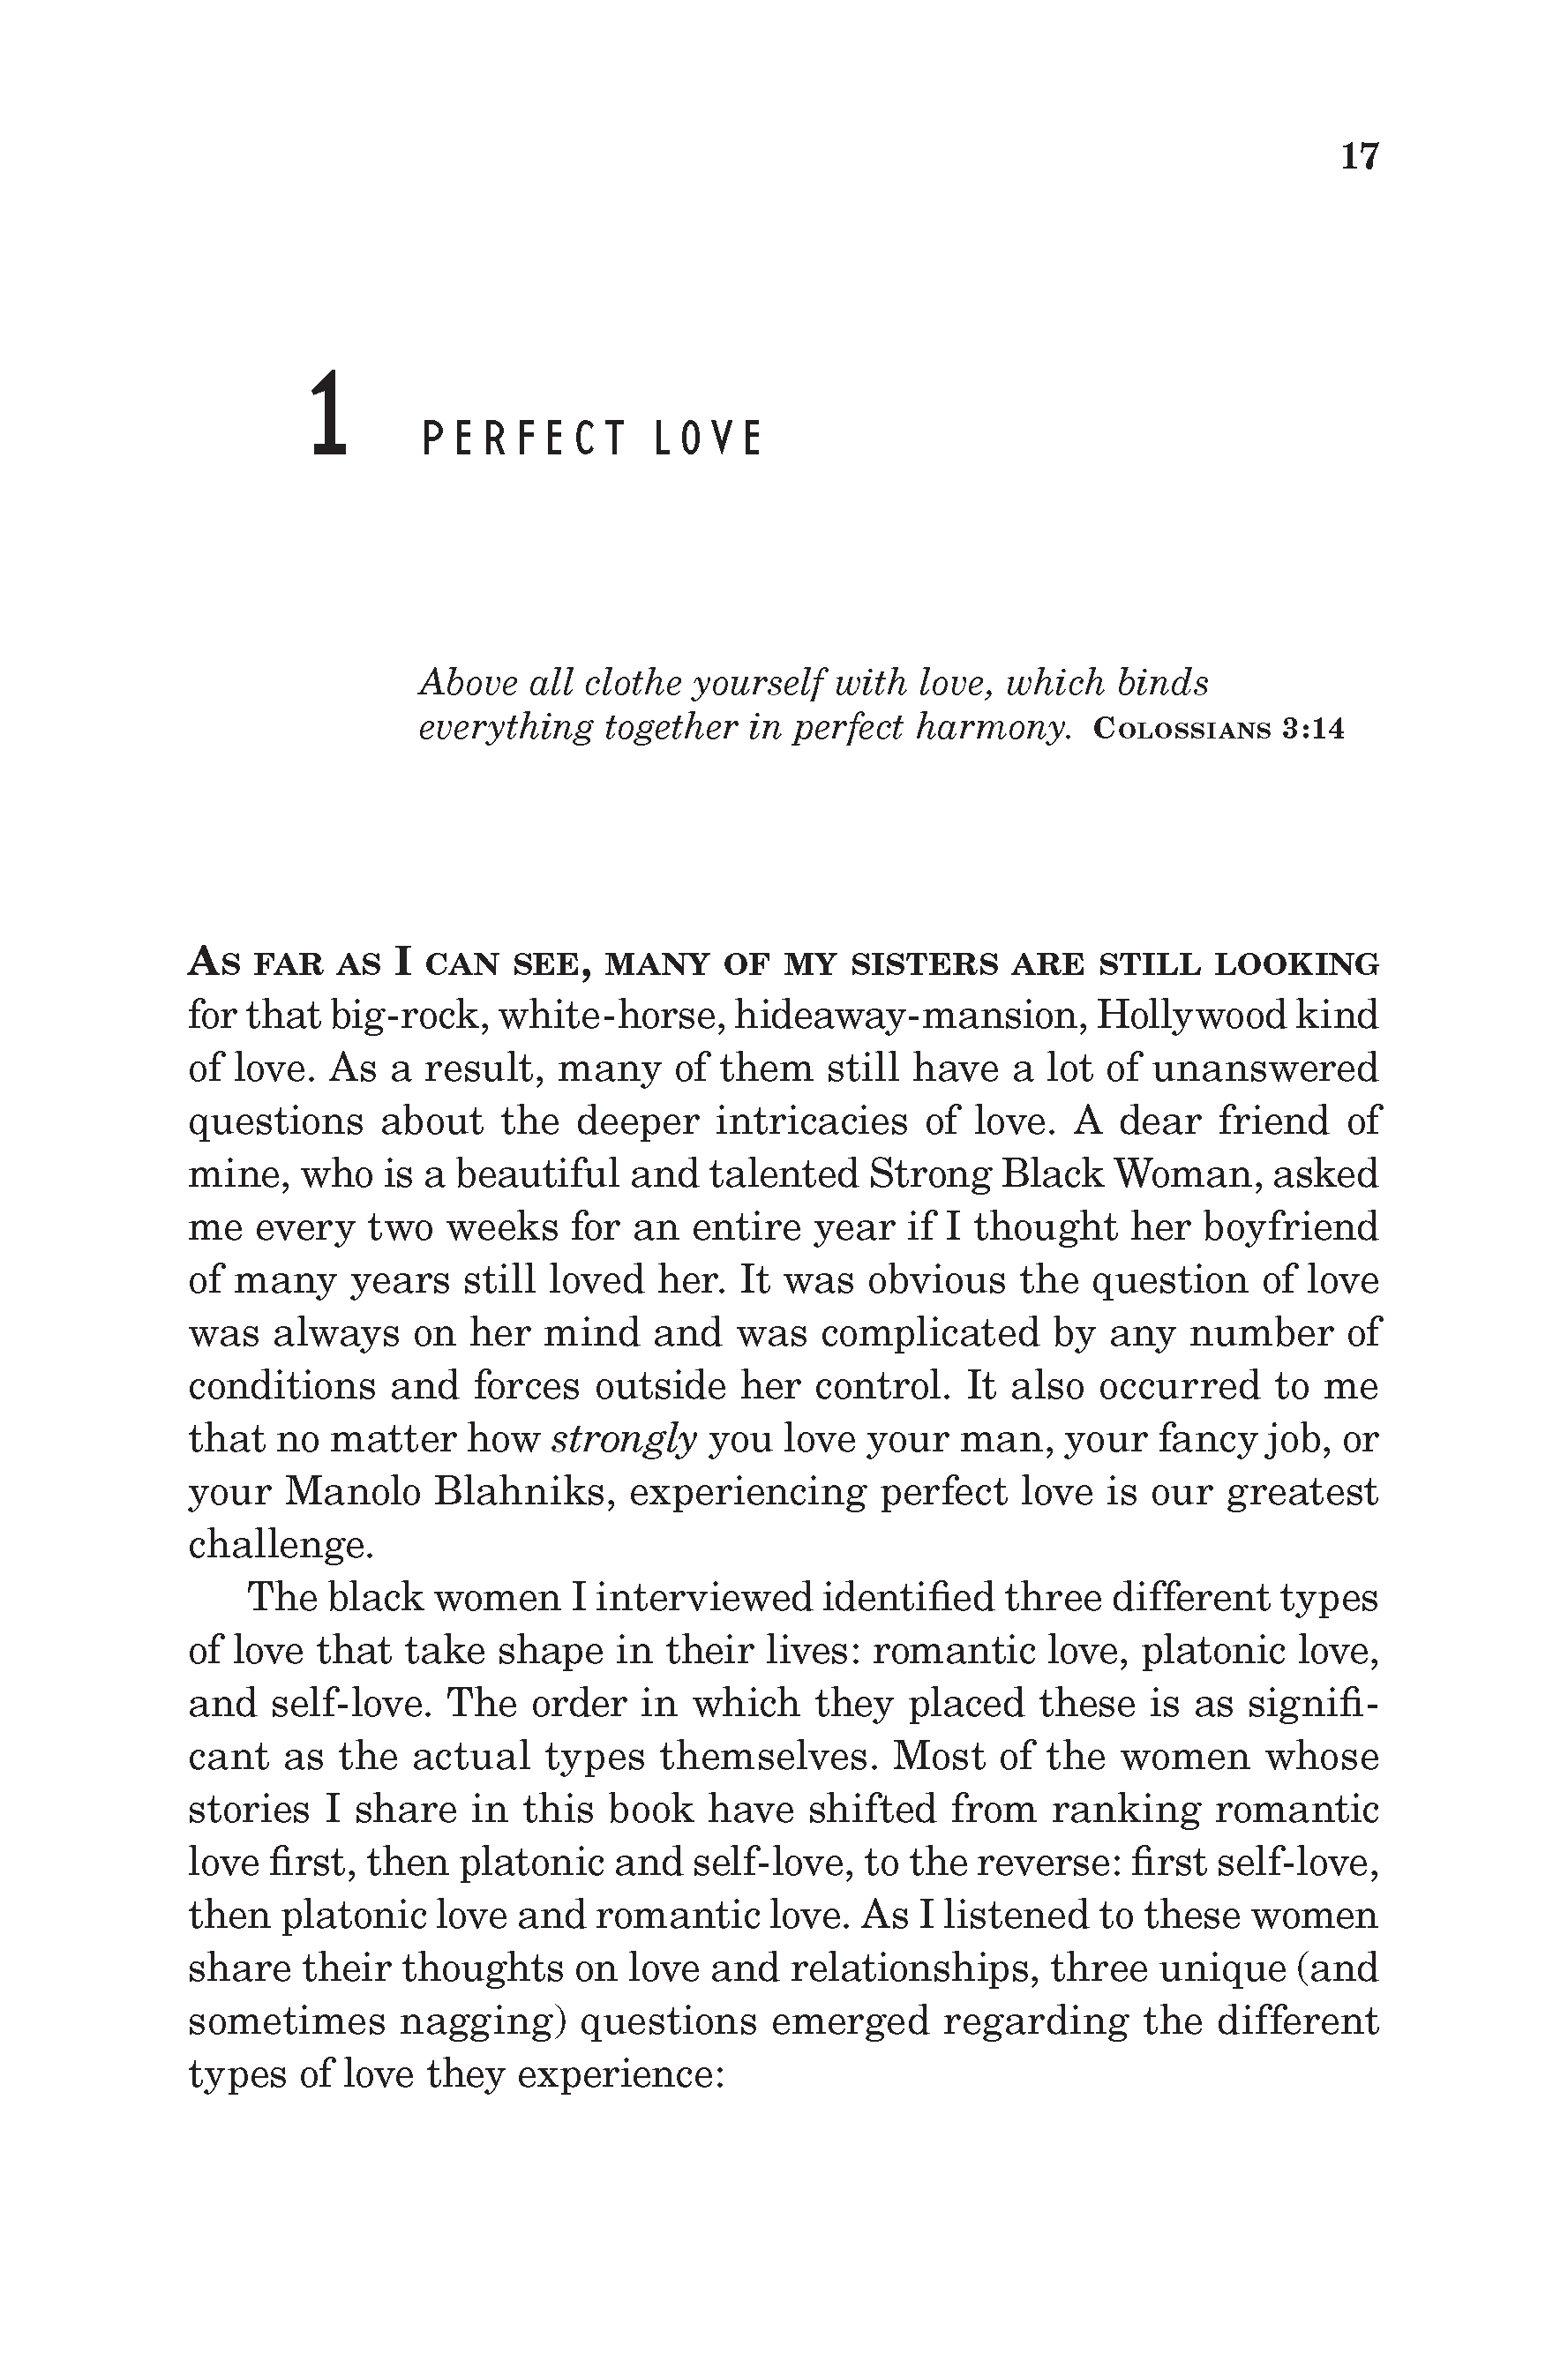 Real Lives of Strong Black Women_Page_03.png